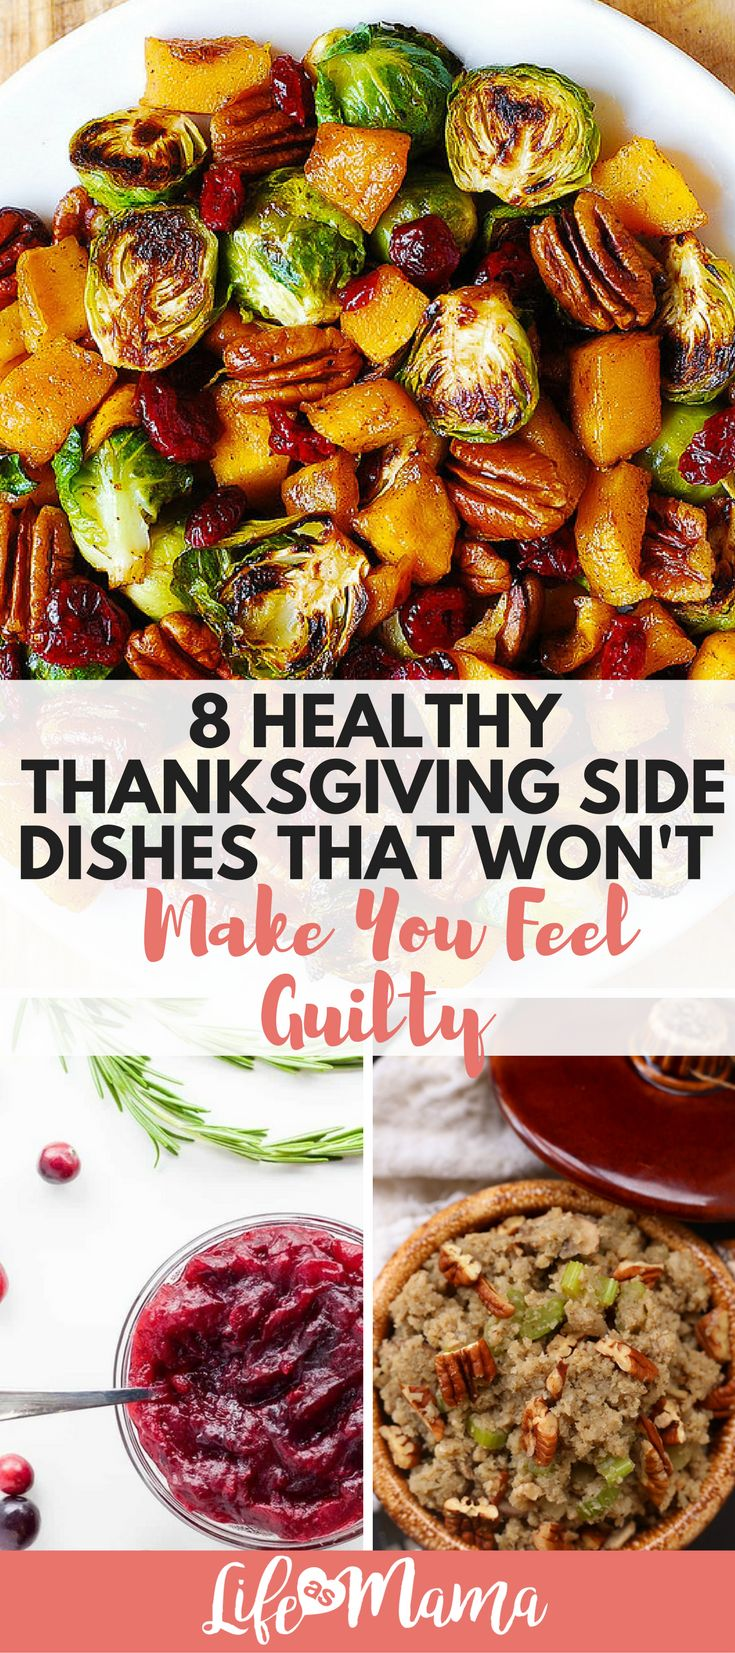 If you want to incorporate more veggies, less fats and even embrace a few vegan and paleo recipes this year, keep reading! We've found some great healthy Thanksgiving side dishes that won't make you feel guilty.